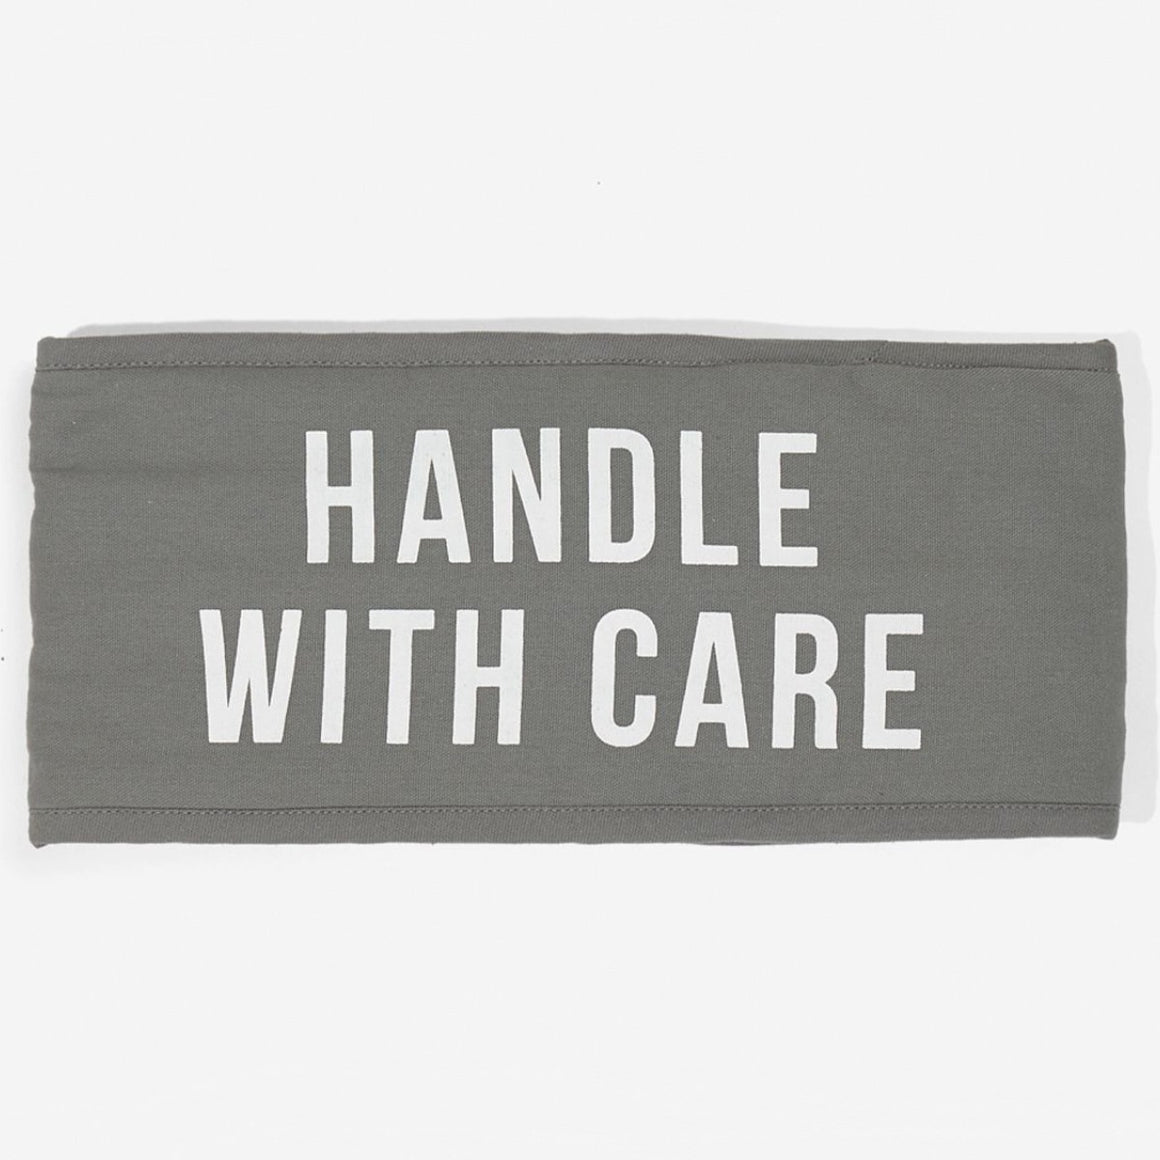 Image featuring a grey square band of fabric (oven mitt folded) with white text on the front saying Handle with care